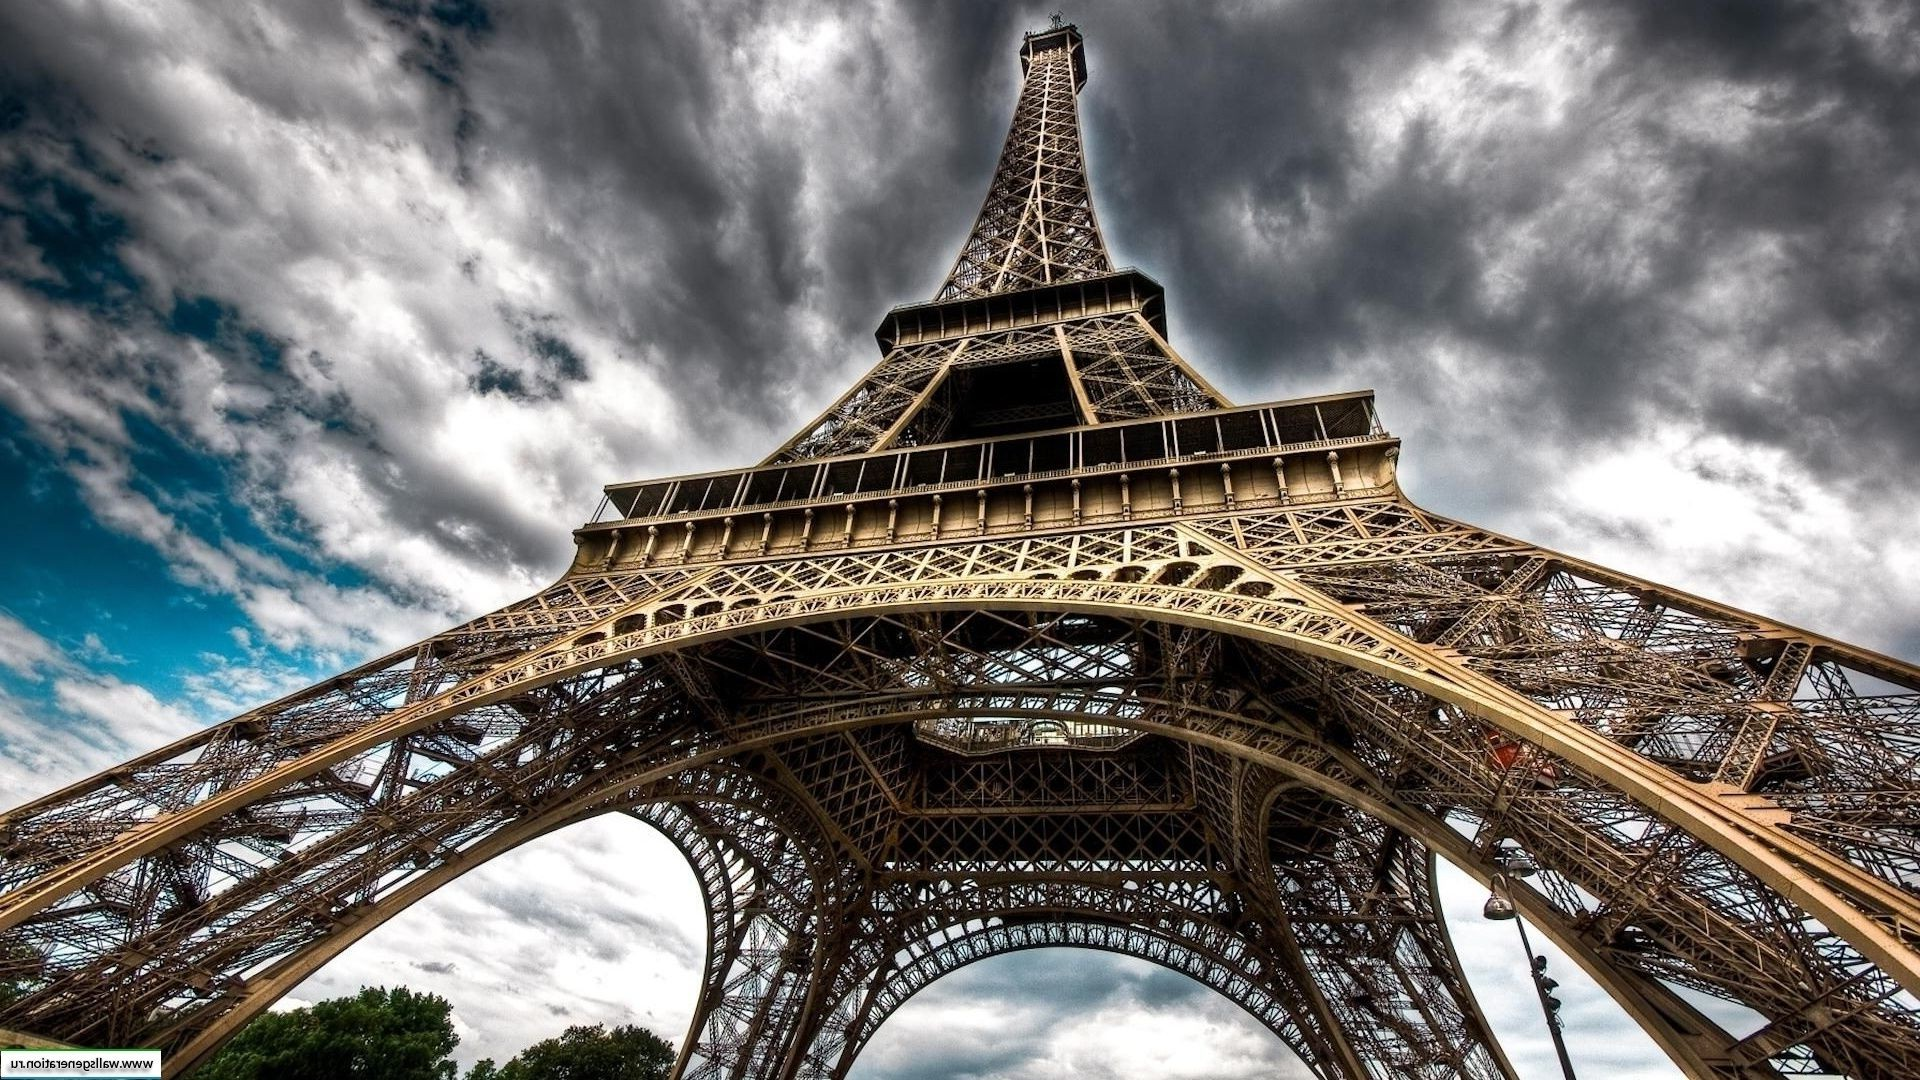 Eiffel tower - Paris iron sky monument architecture